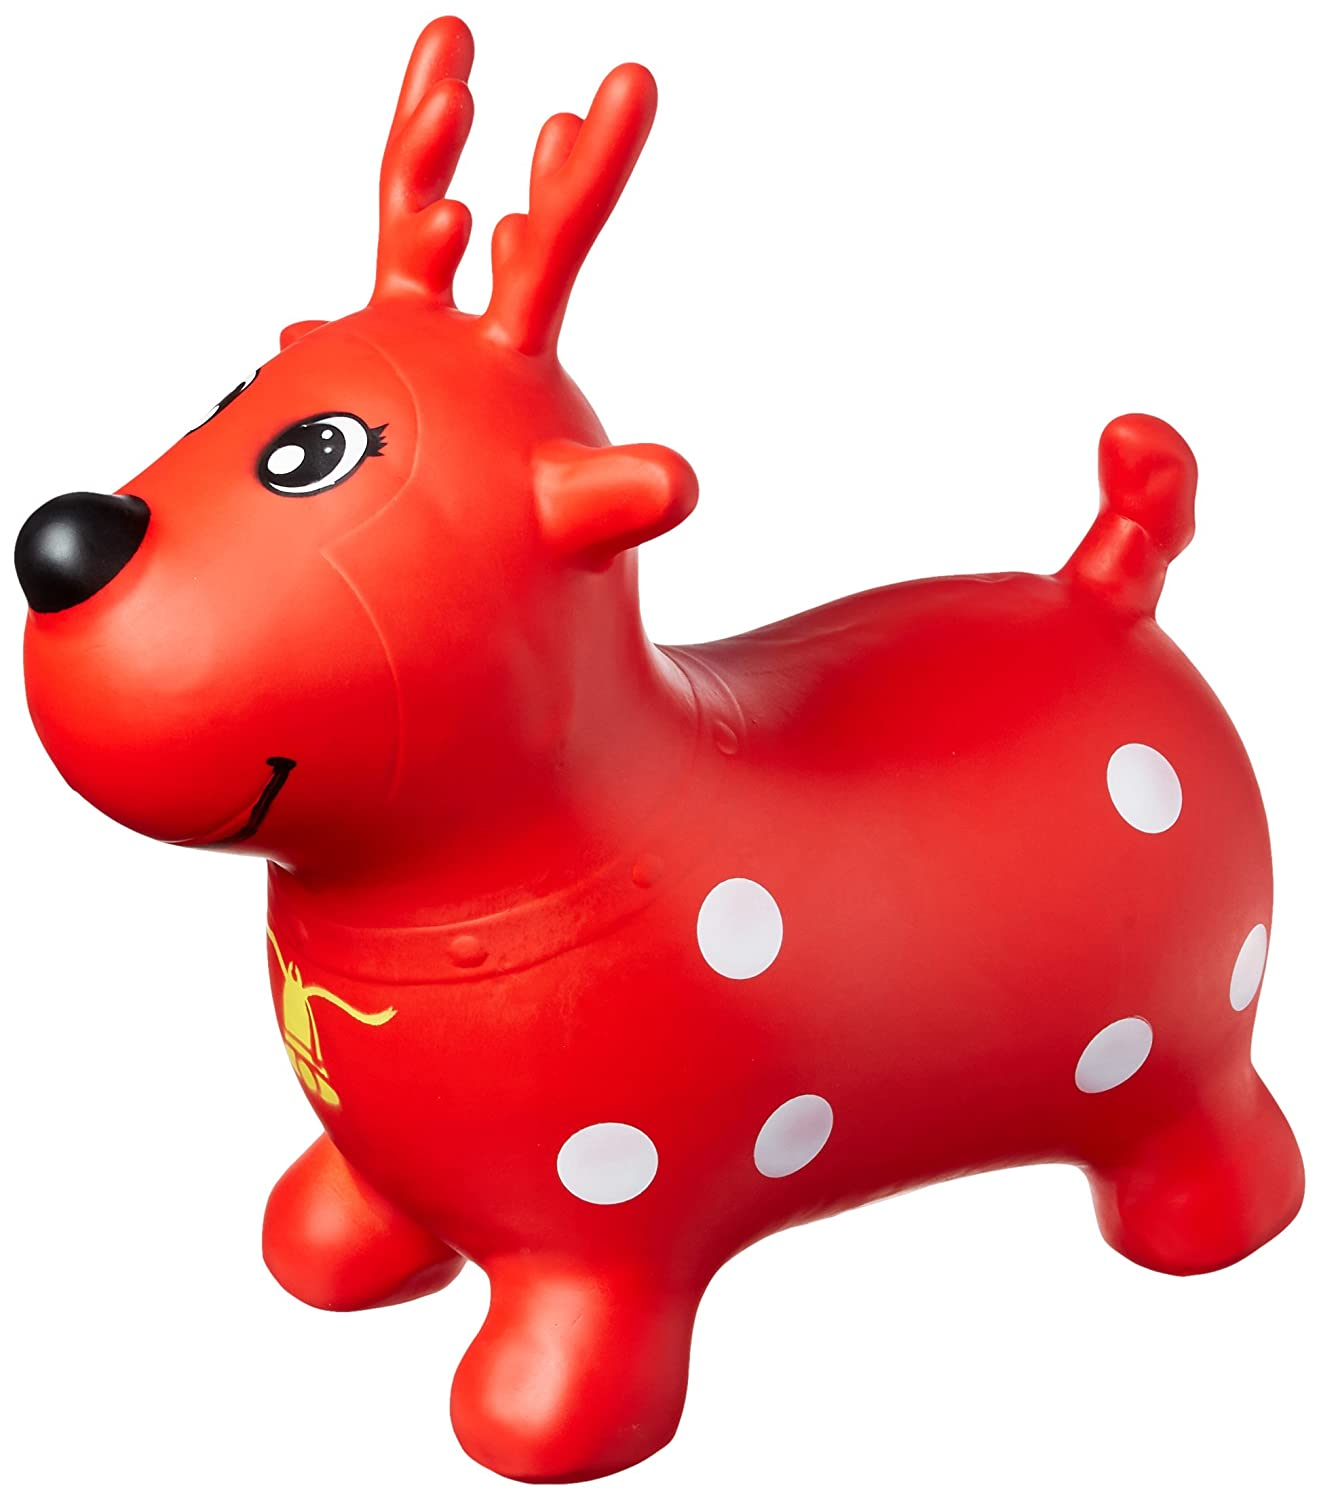 AppleRound Red Reindeer Bouncer with Hand Pump Inflatable Space Hopper Ride on Bouncy Animal